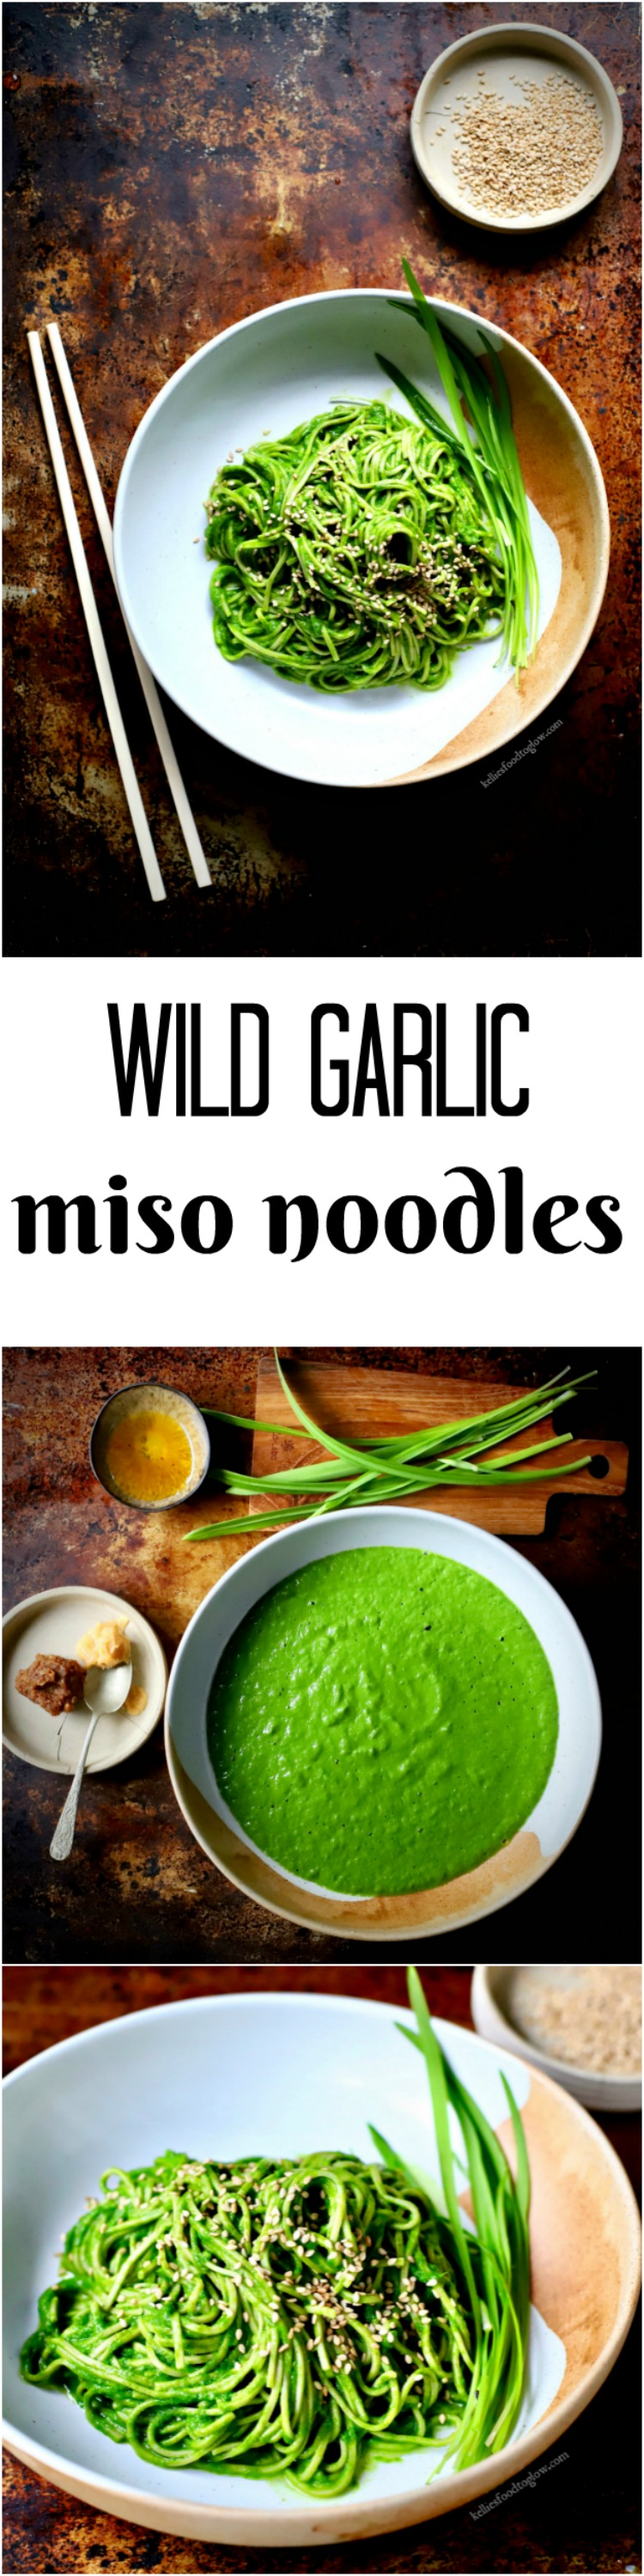 Silky and seasonal wild garlic, #miso and spinach #sauce for pasta, noodles, steamed vegetables and more.#wildgarlic #rawfood #vegan #glutenfree